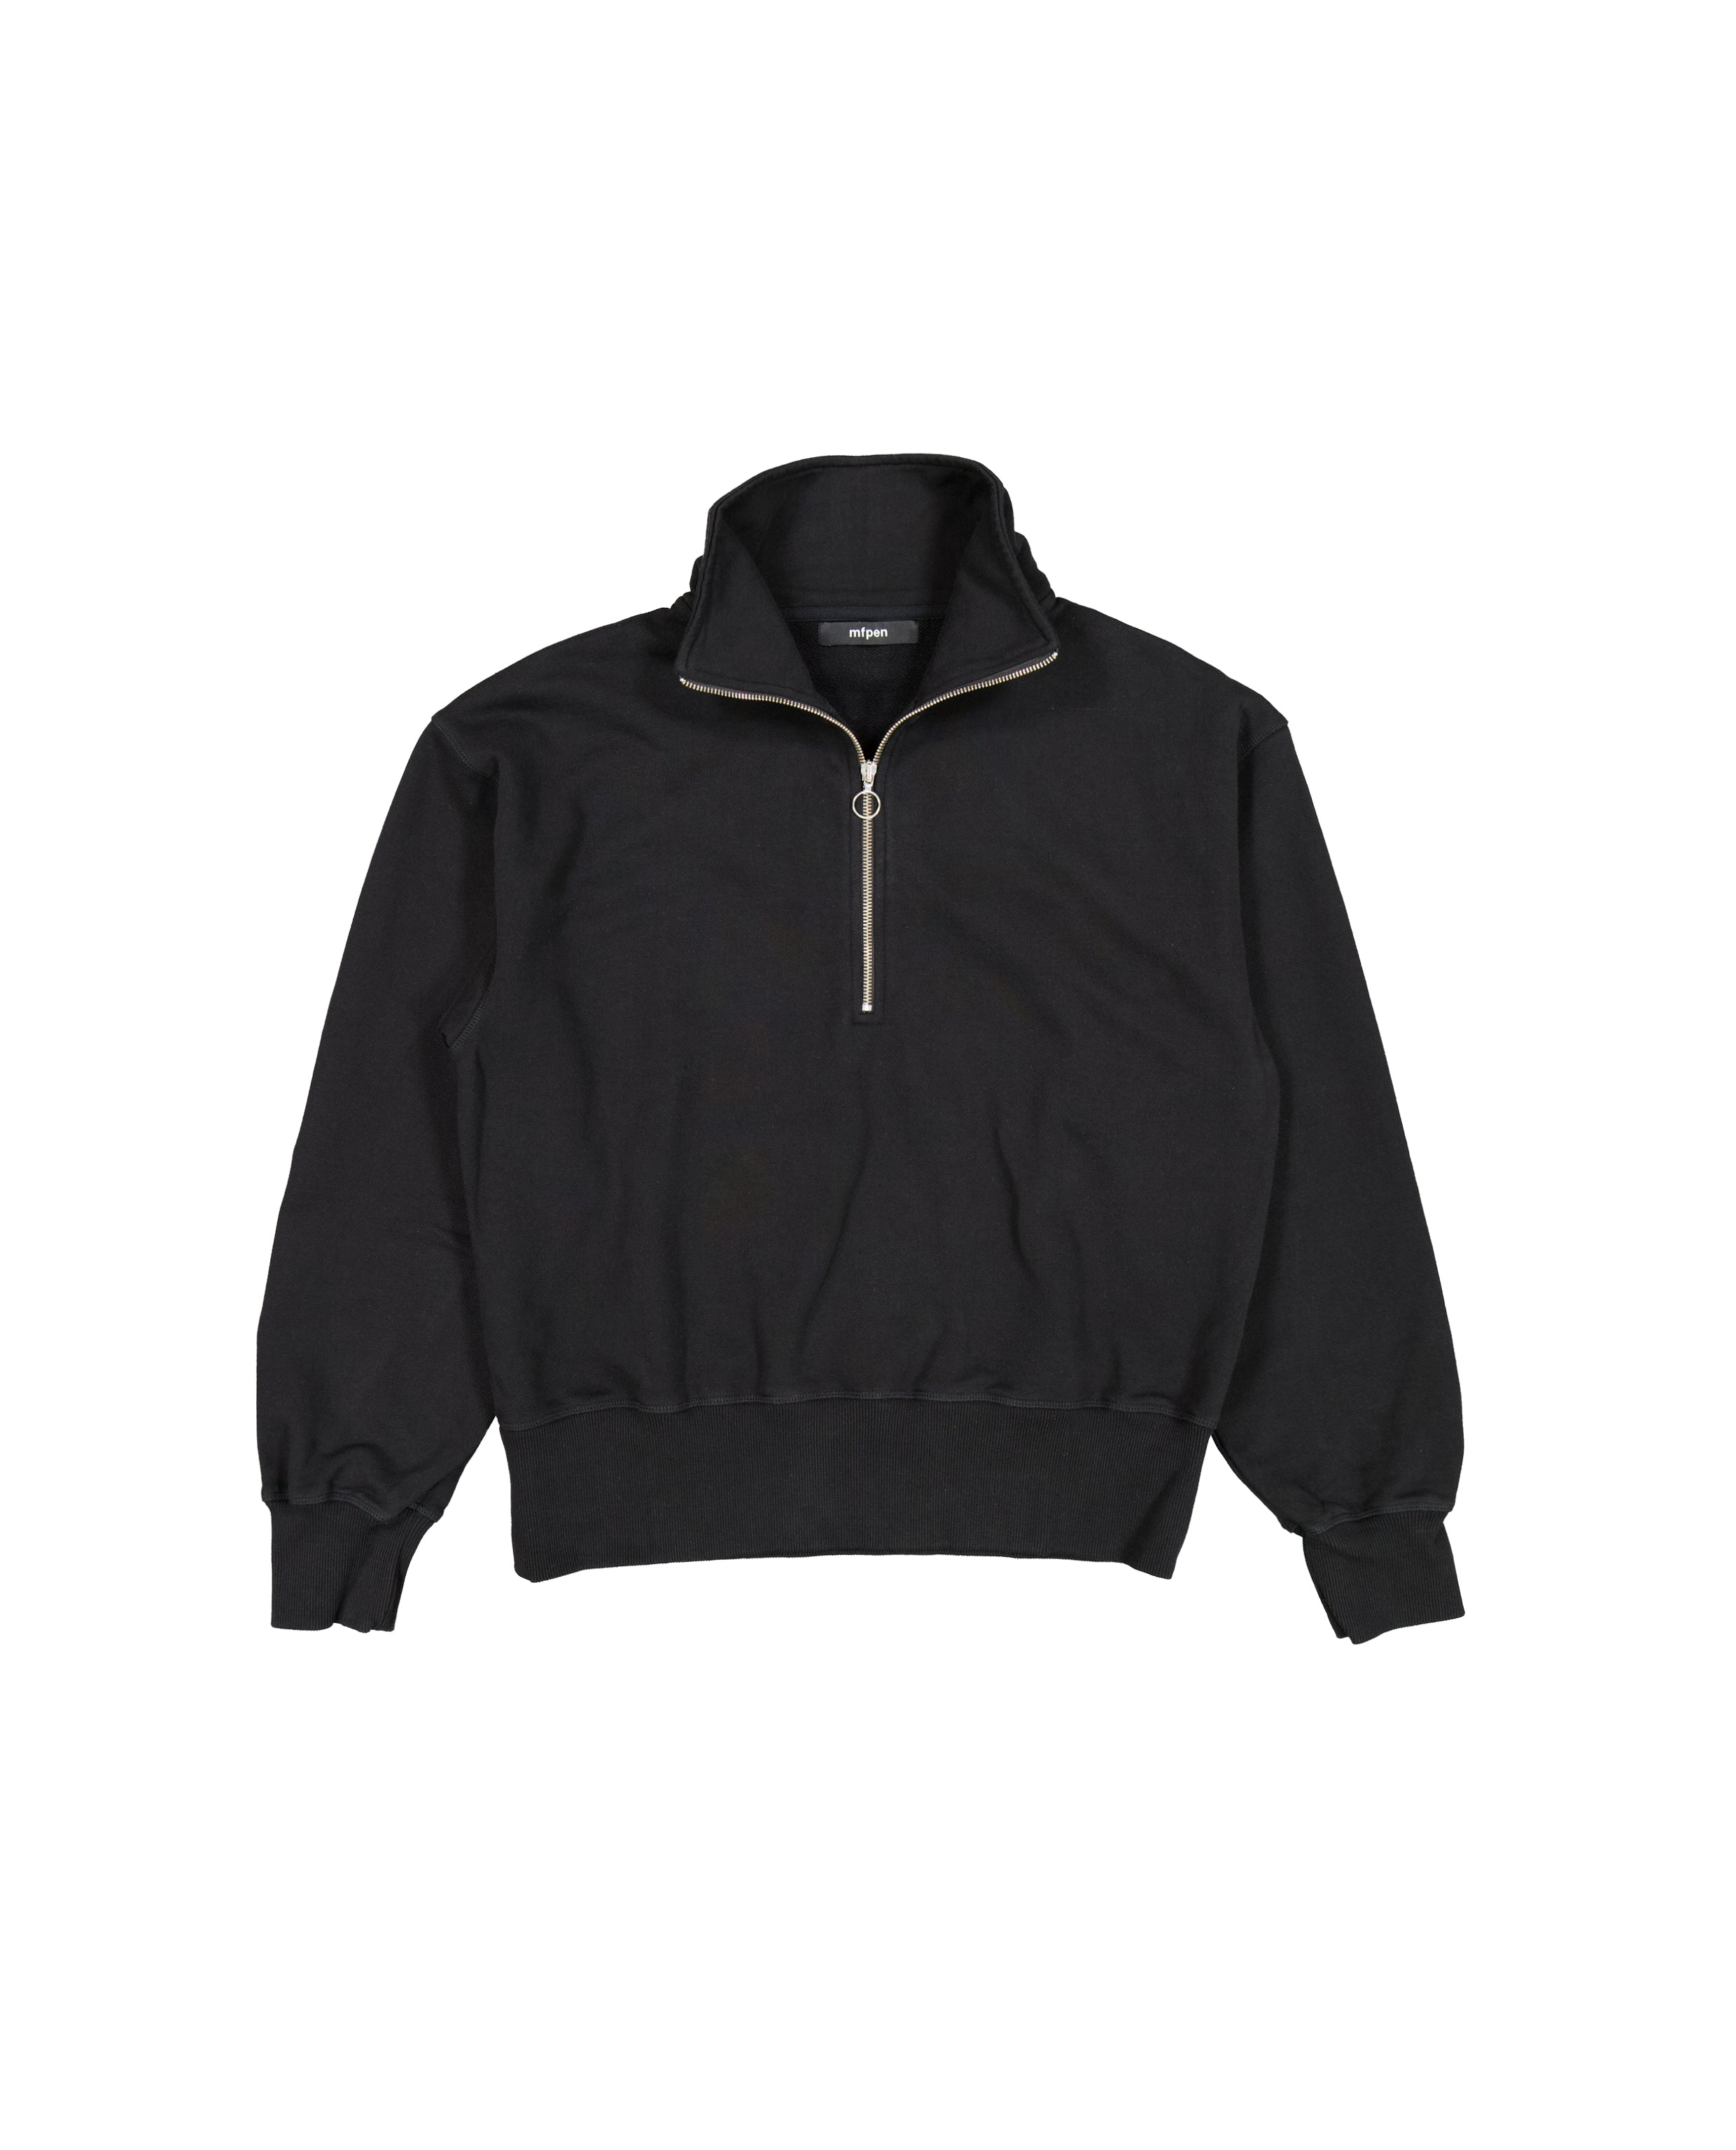 HALF ZIP SWEATER - BLACK